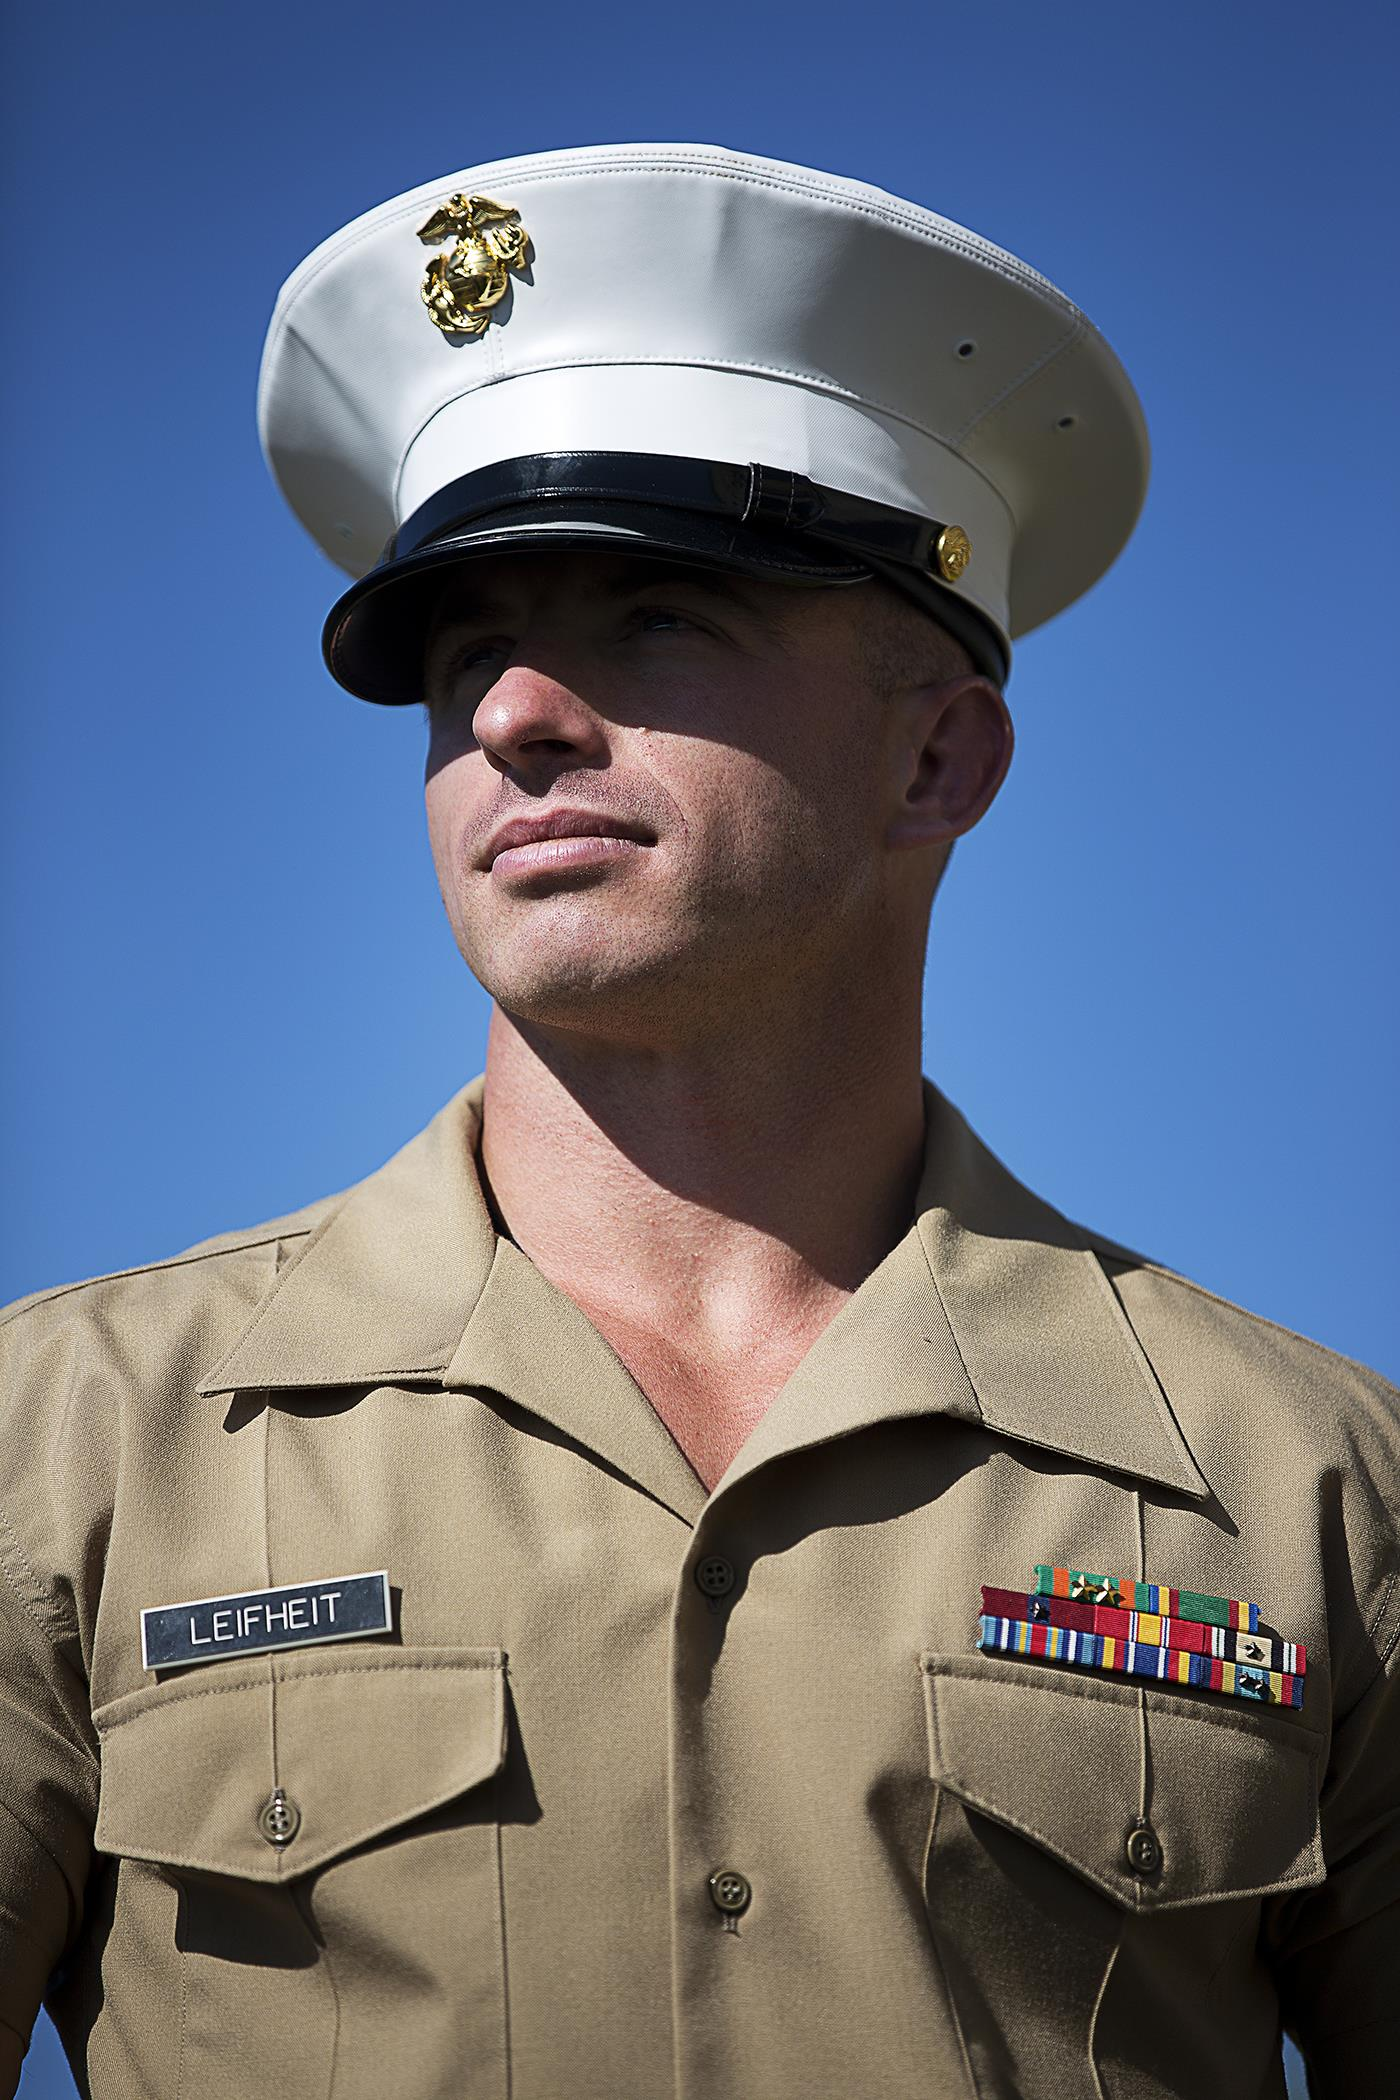 Marine recruiter in Idaho saves man's life after suicide ...